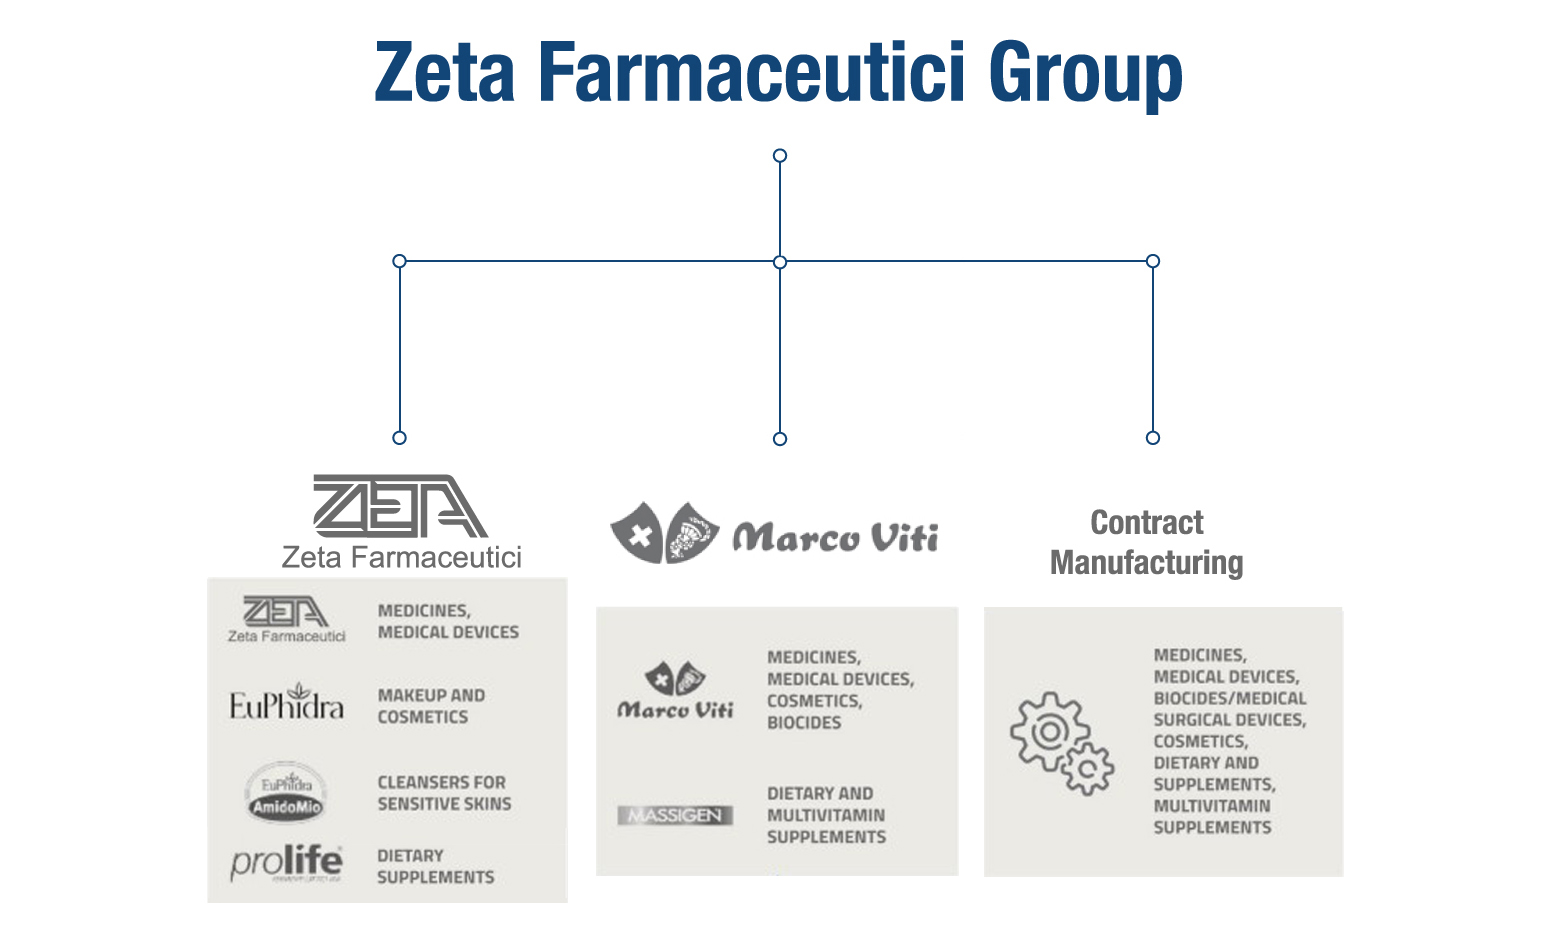 ZetaFarmaceuticiGroup-info_En